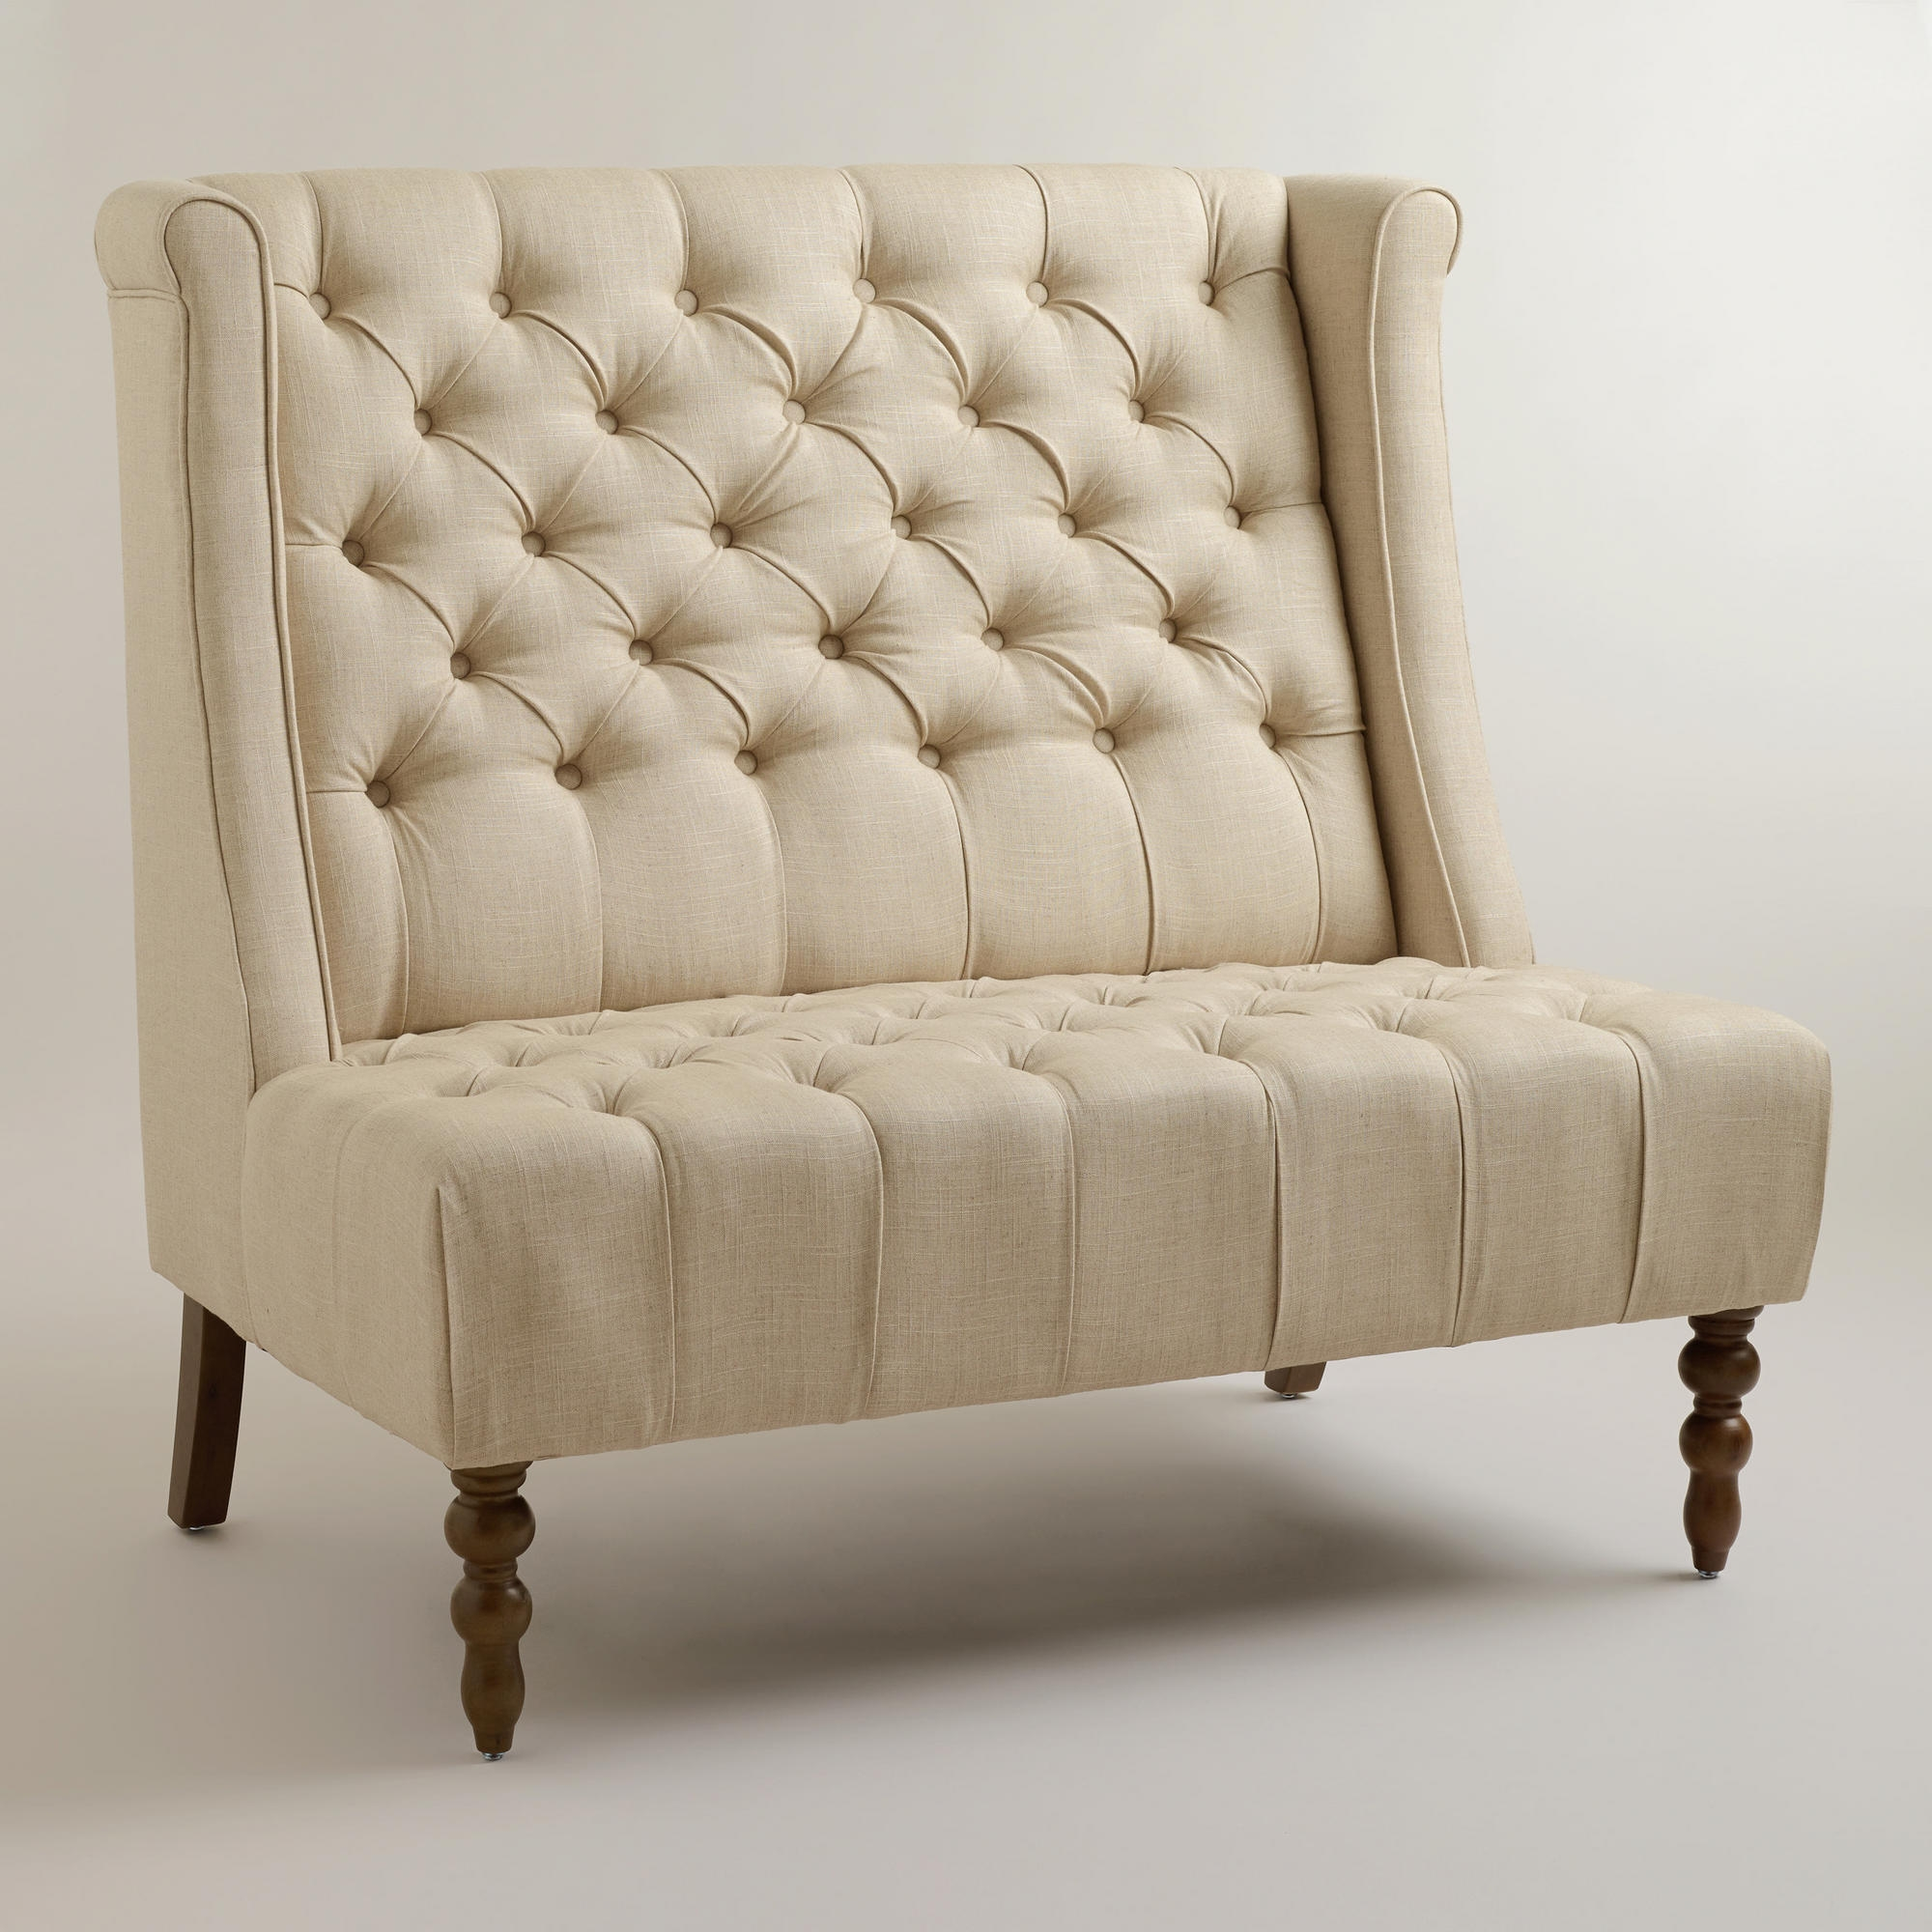 Furniture Settee Bench Antique To Modern Casecre Pertaining To Sofas With High Backs (Image 4 of 15)